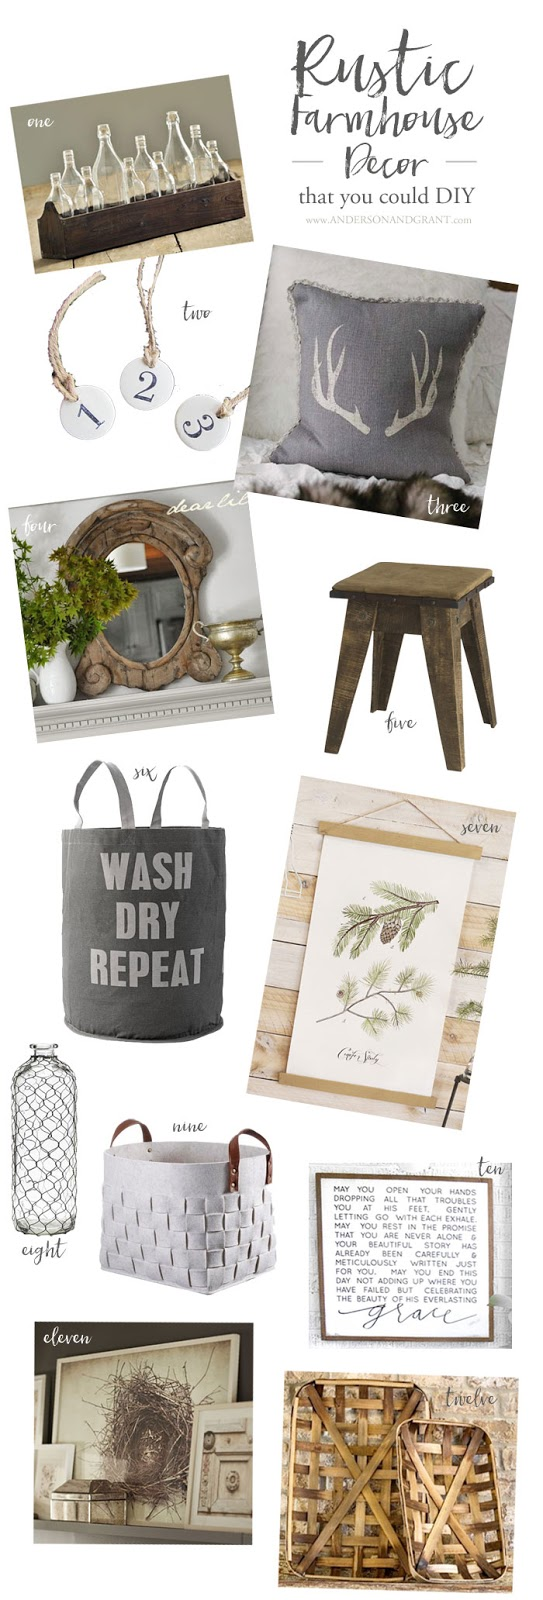 12 Rustic Industrial Products to buy or use as DIY Ideas for your home.  ||  www.andersonandgrant.com